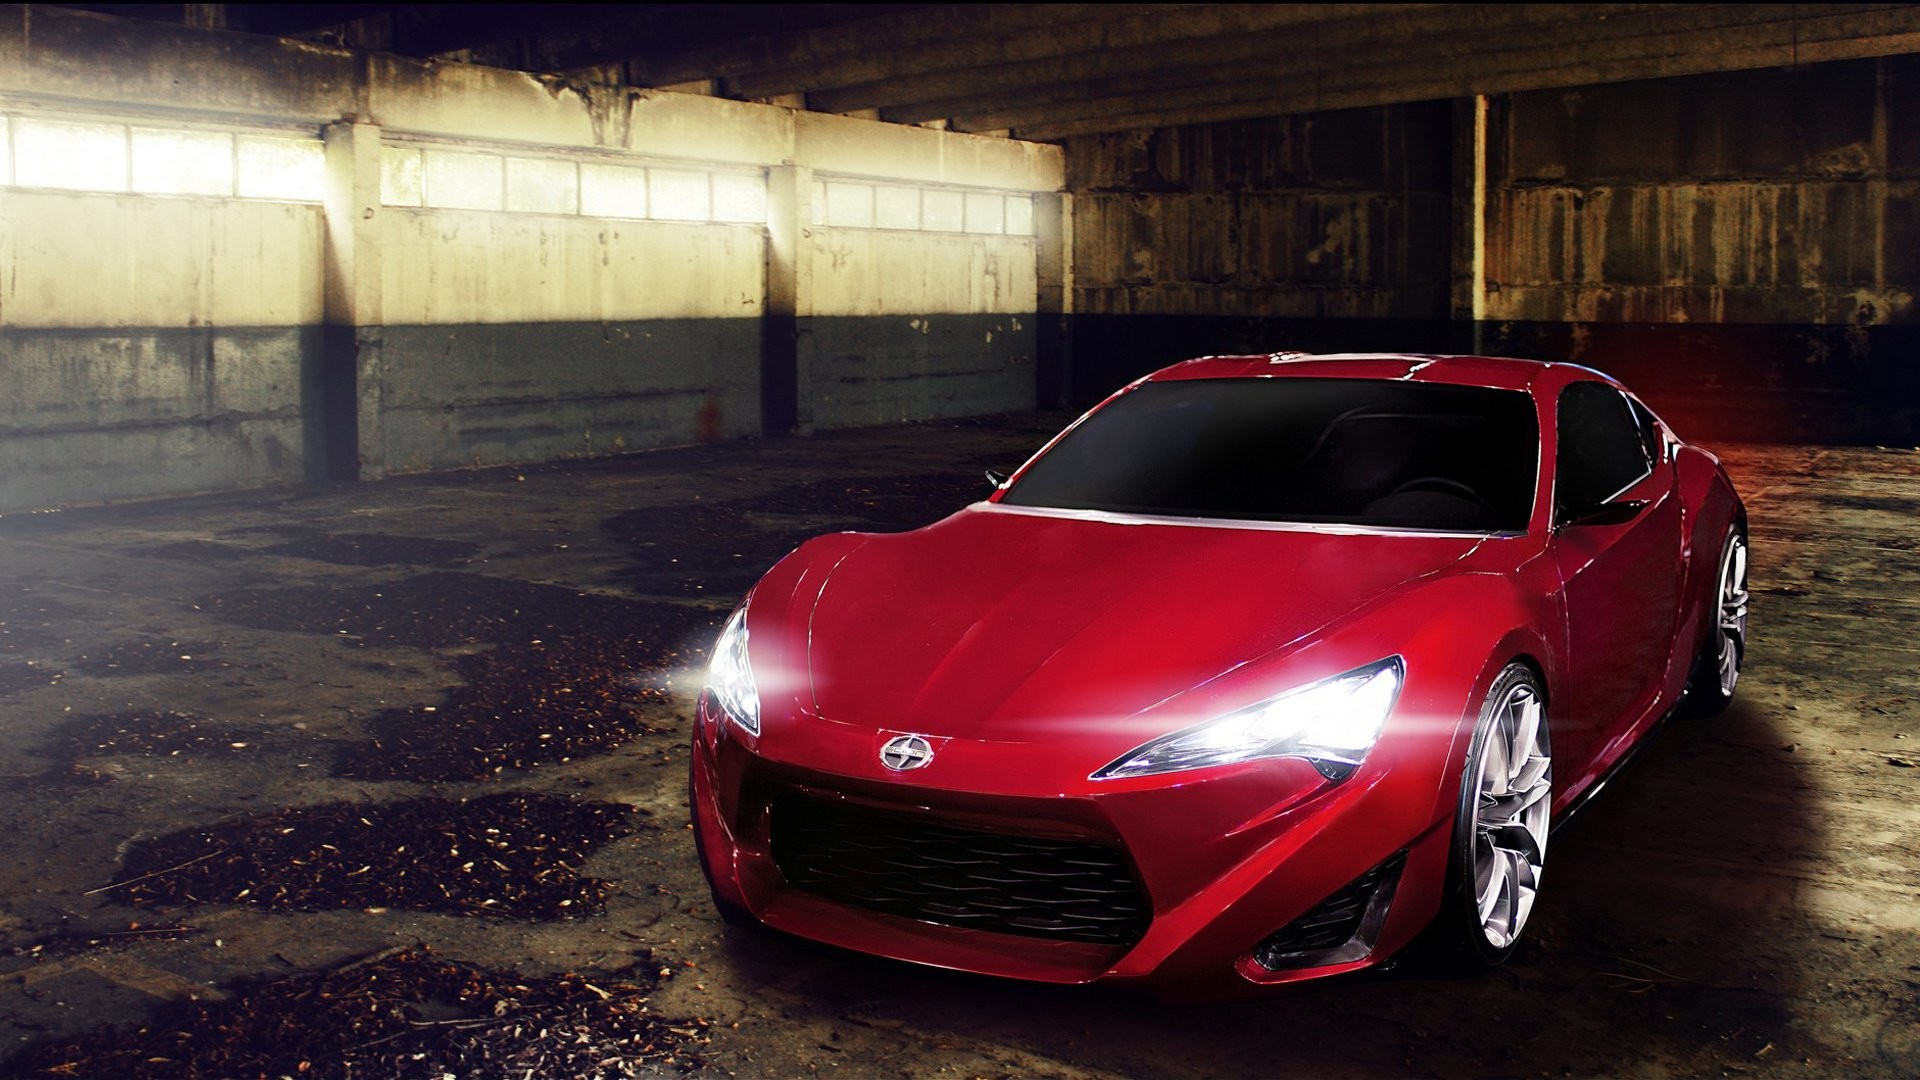 Res: 1920x1080, Scion FRS Wallpaper